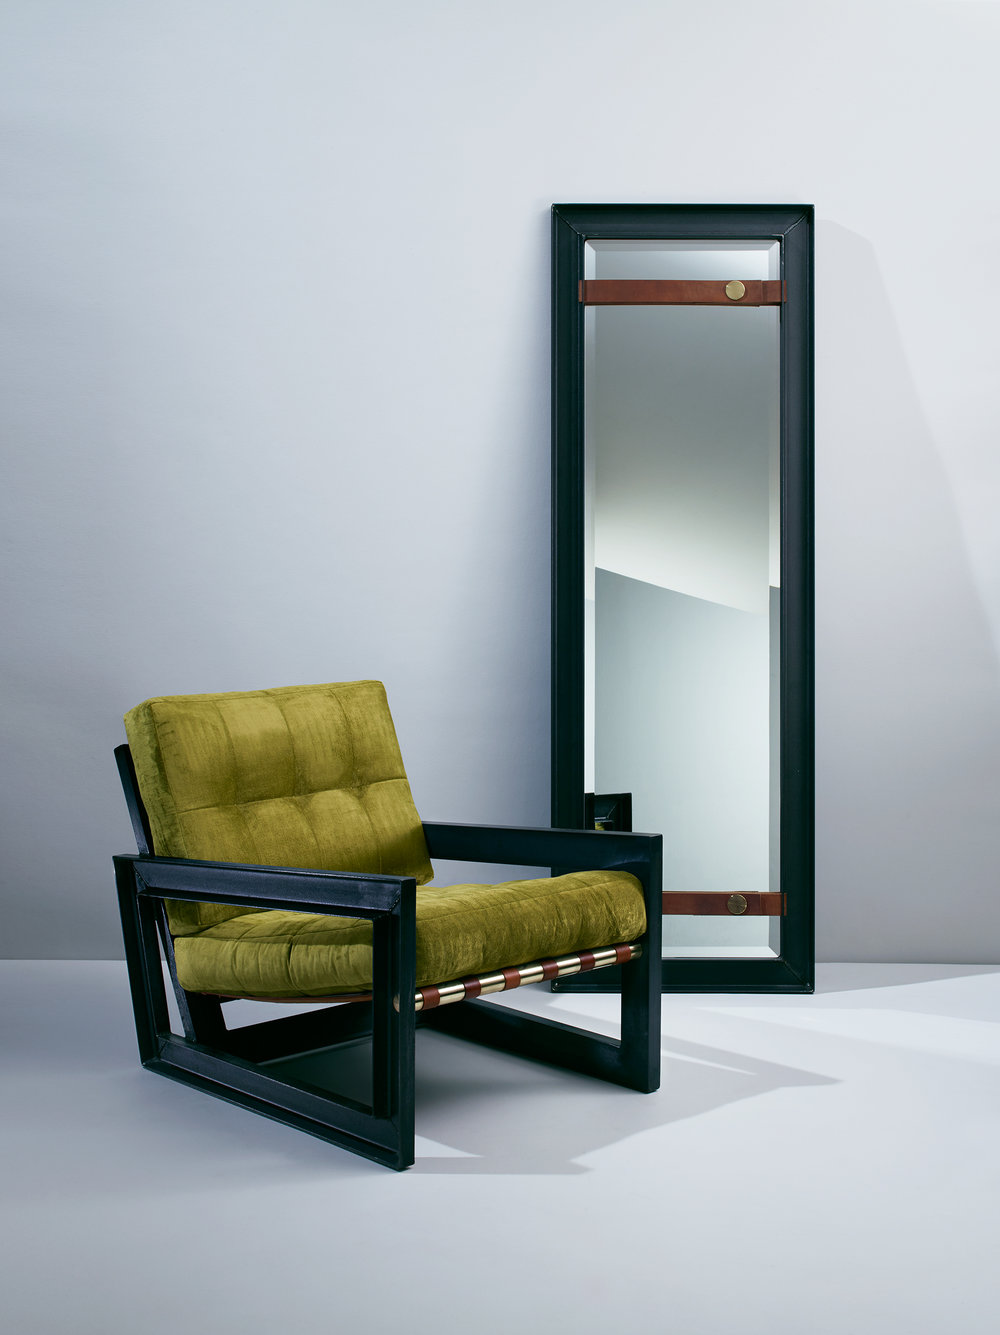 PS1_Chair_Mirror_COMP_R1_Chartreuse_2500pxl.jpg